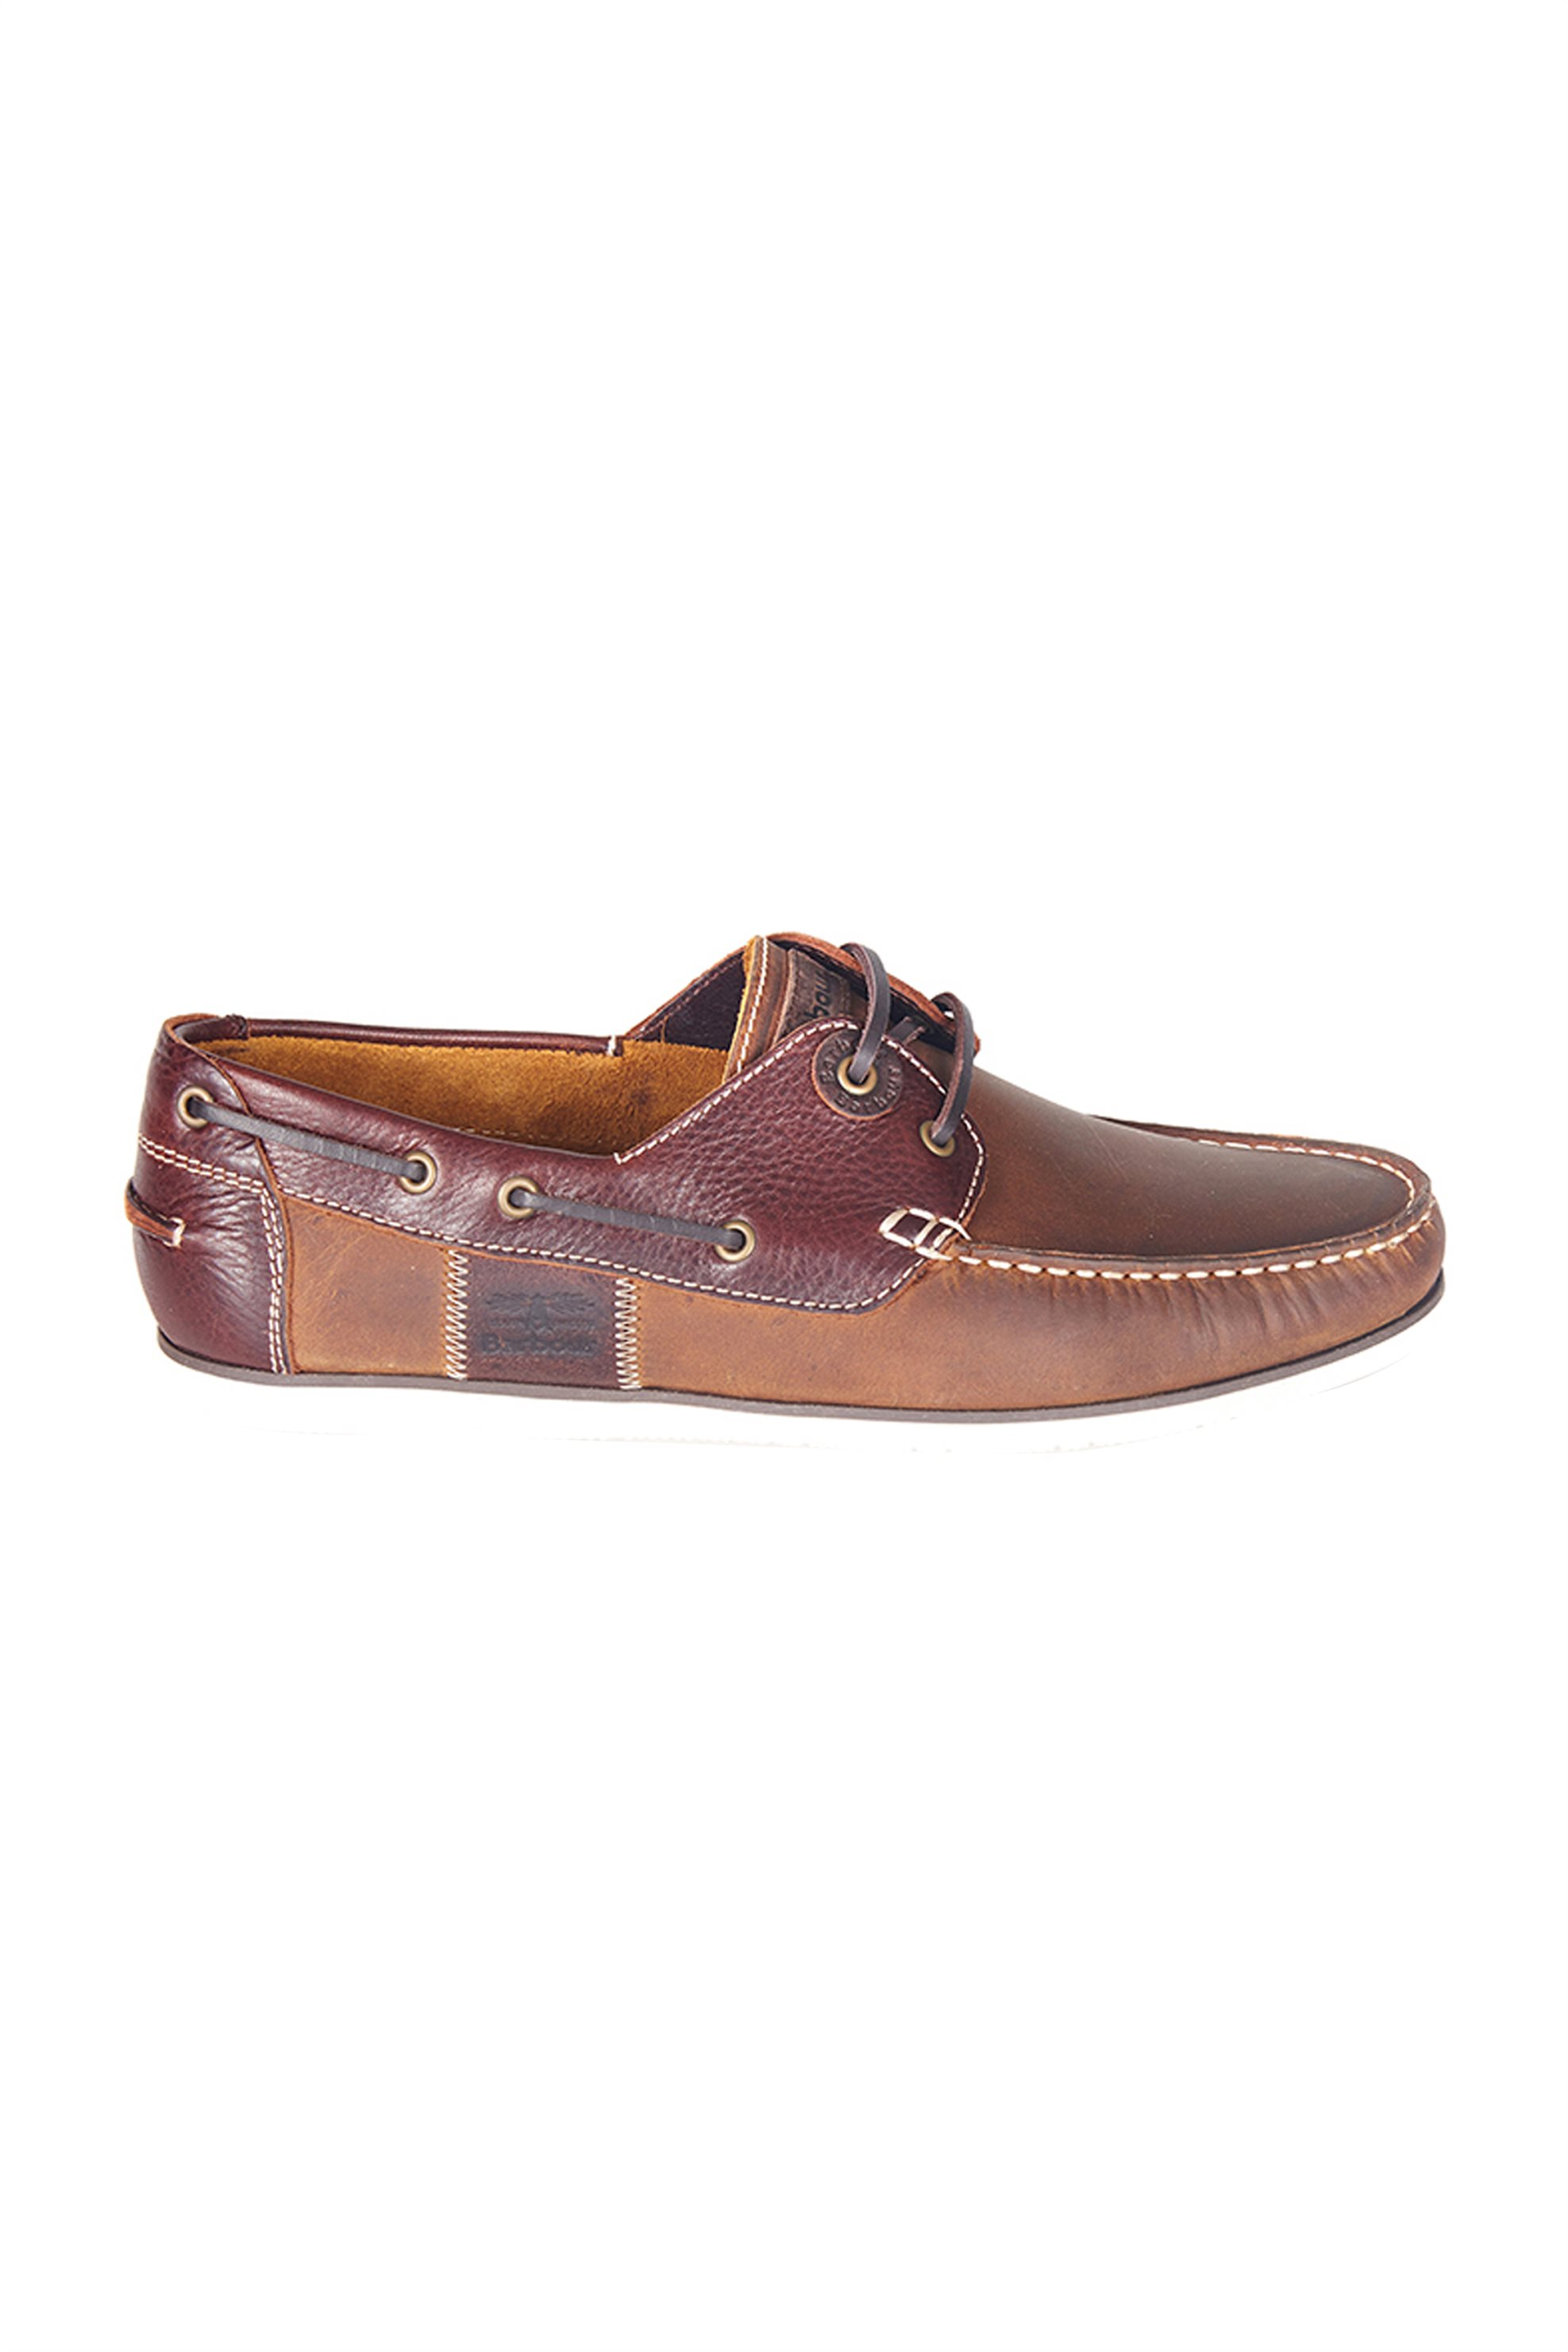 Barbour ανδρικά boat shoes - MFO0304 - Ταμπά ανδρασ   παπουτσια   boats